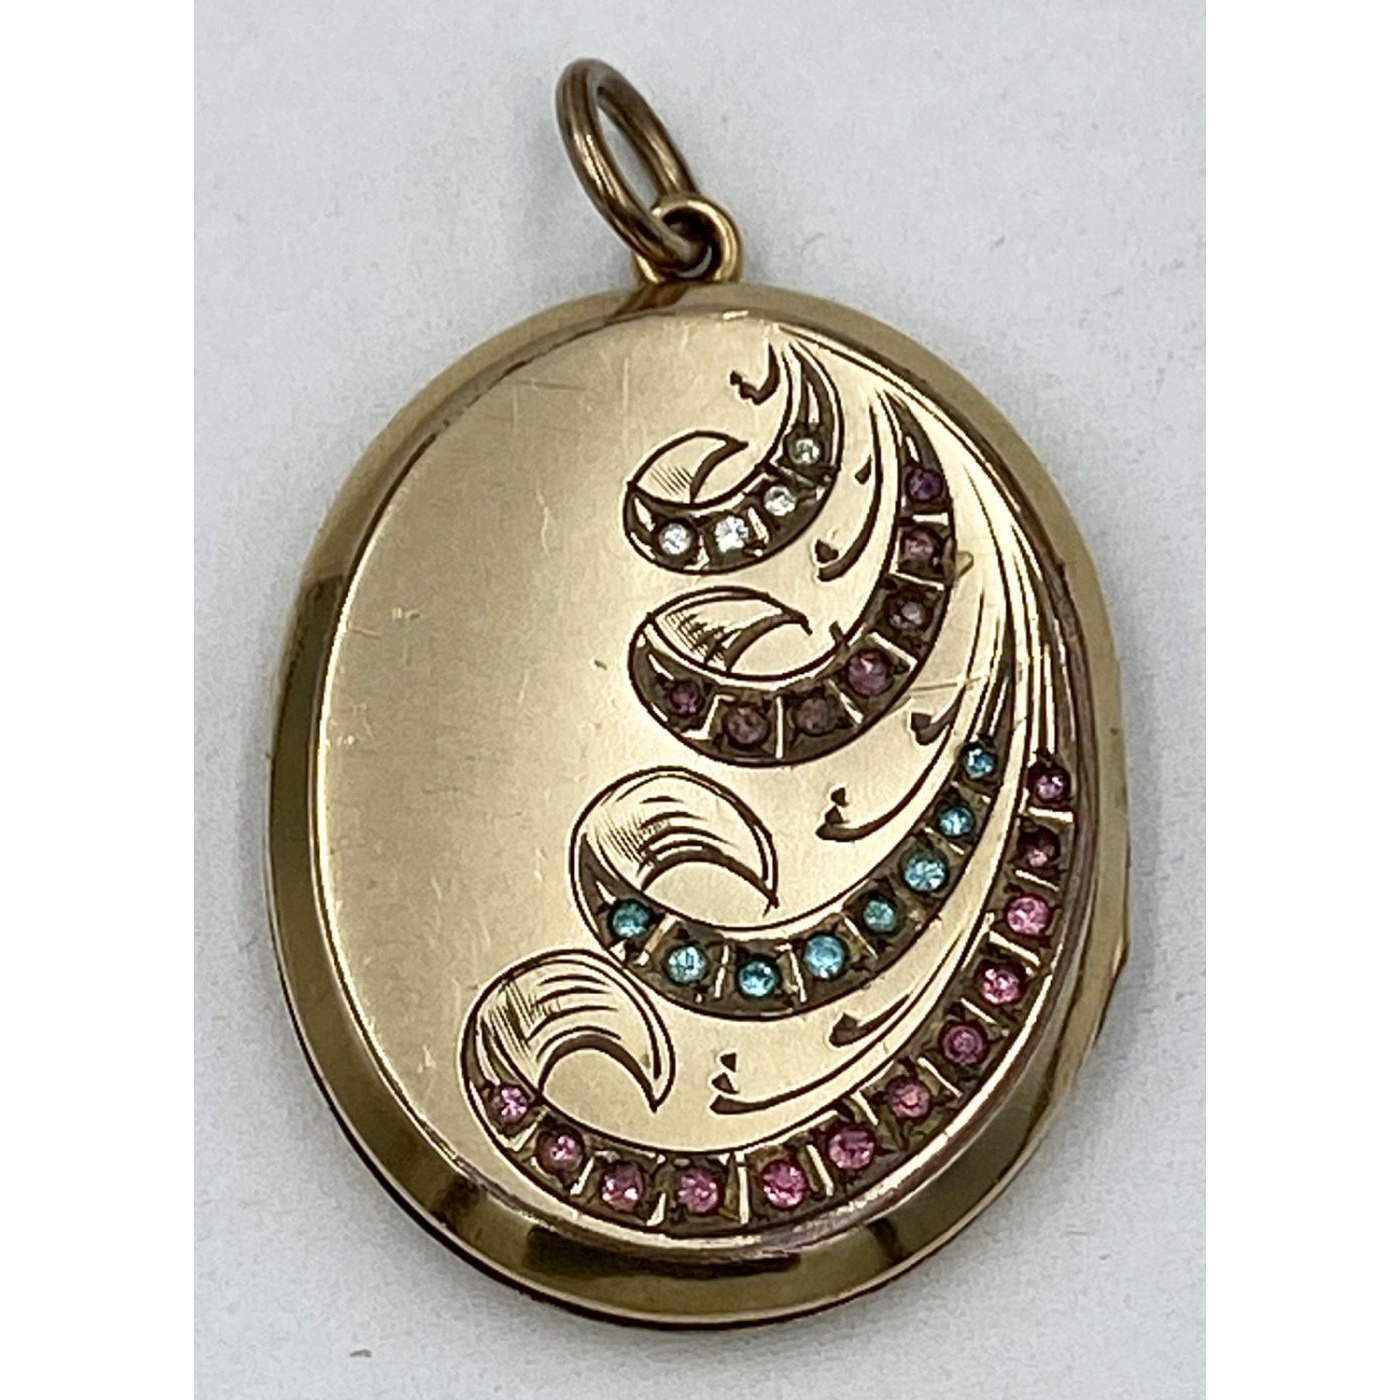 Excellent Gold-Filled Locket with Colored Stones